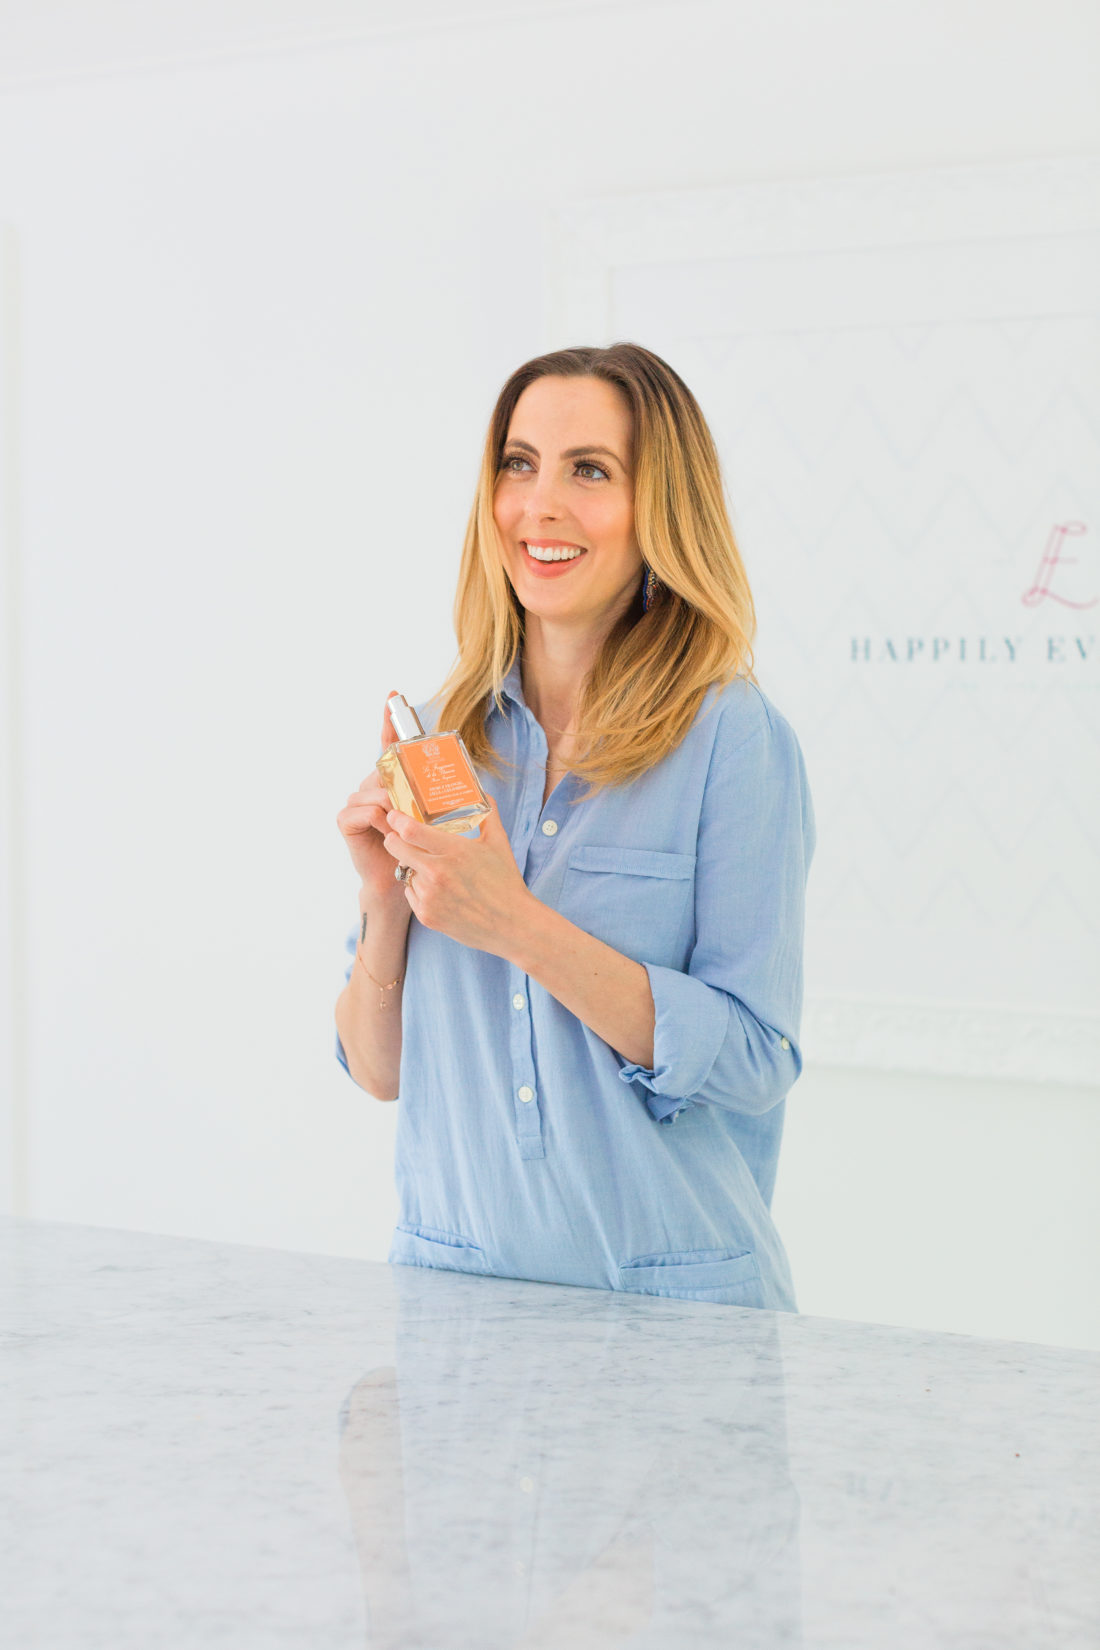 Eva Amurri Martino wears a light blue shirt dress and holds a bottle of Antica Farmacista room spray